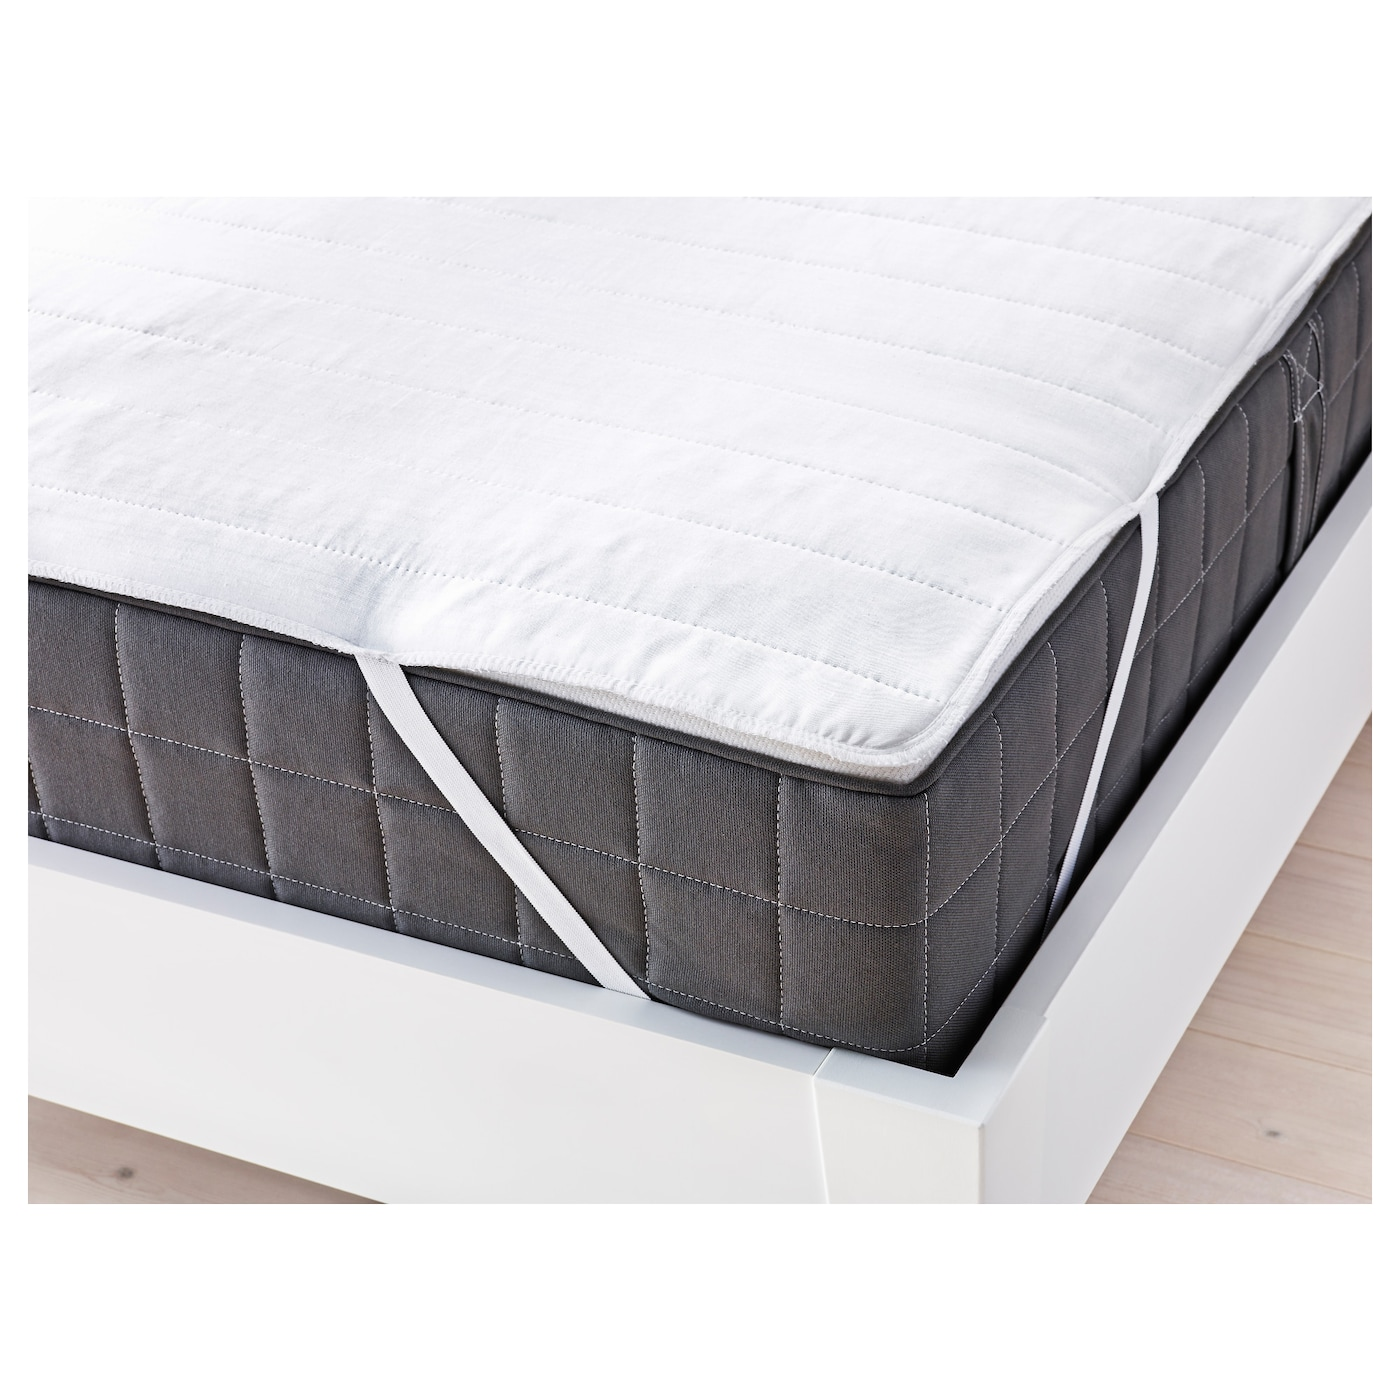 IKEA ÄNGSVIDE mattress protector